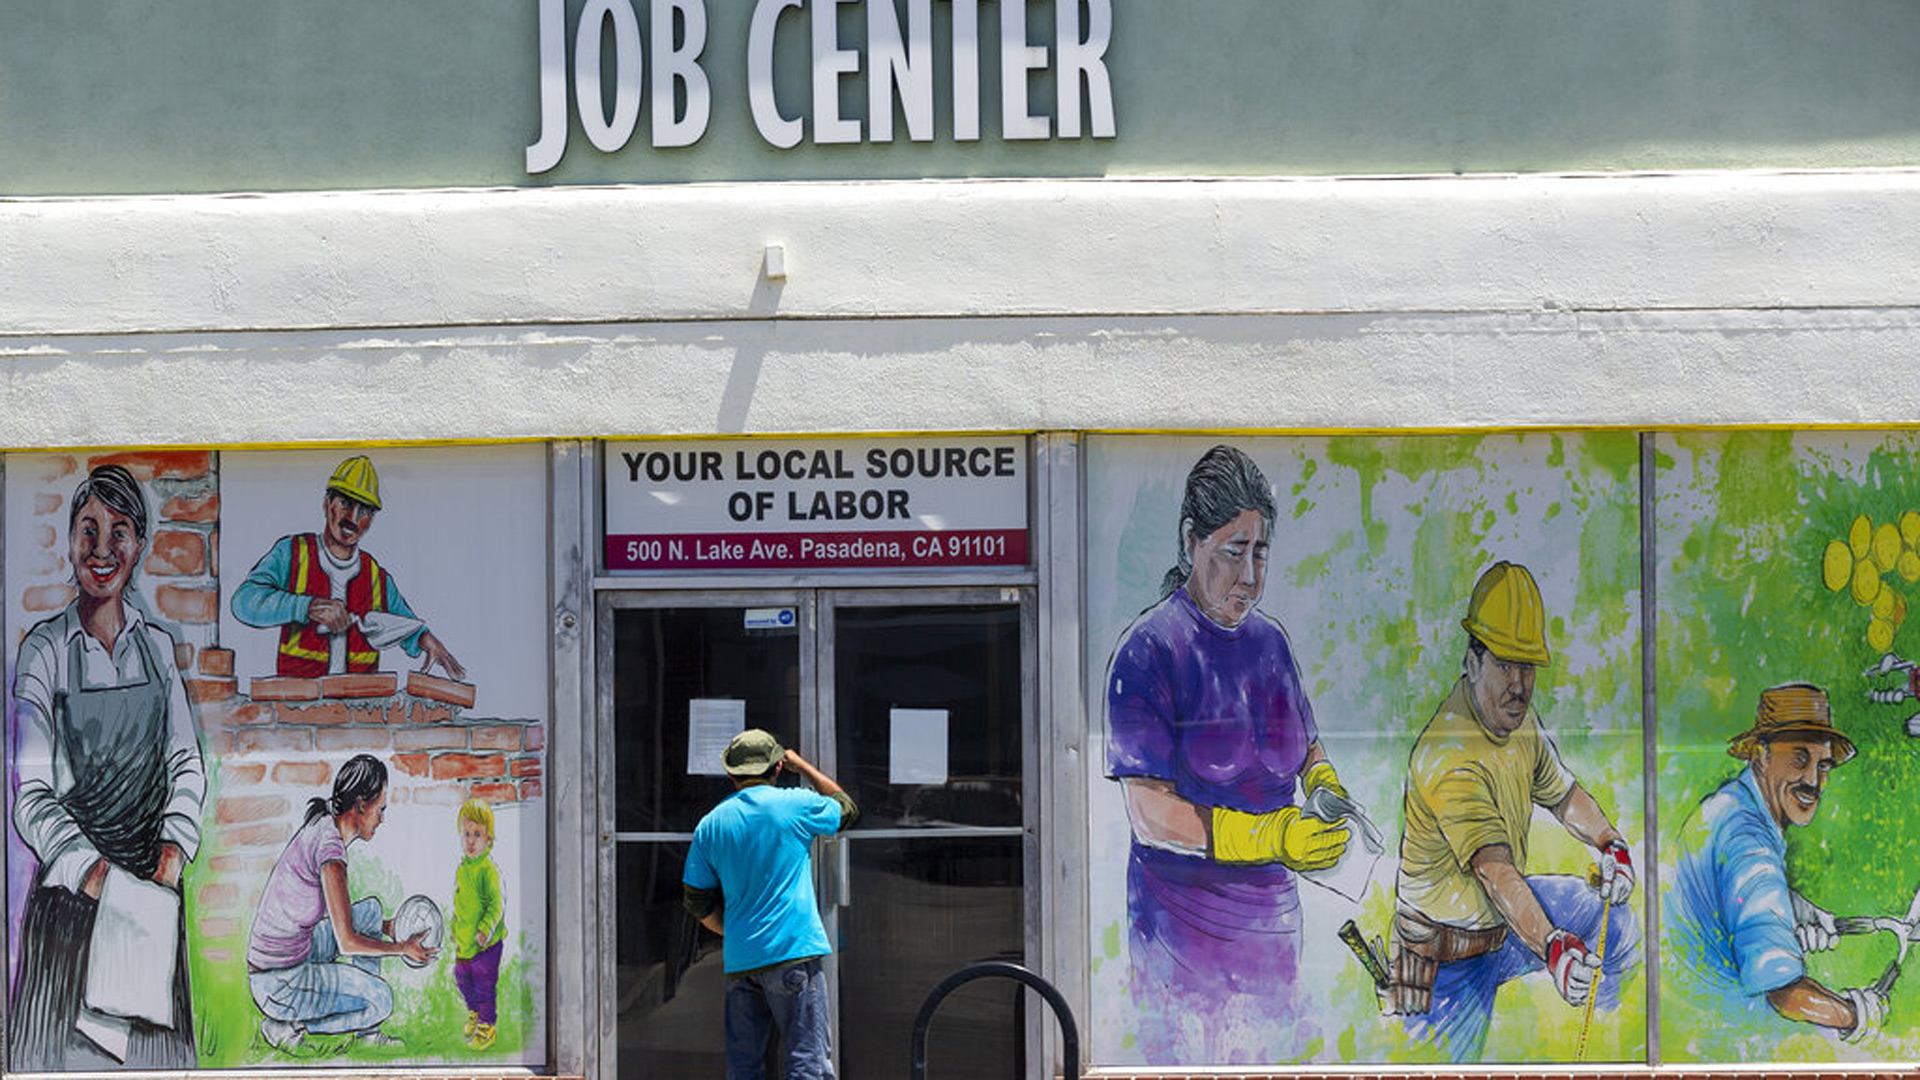 In this May 7, 2020 file photo, a person looks inside the closed doors of the Pasadena Community Job Center.(AP Photo/Damian Dovarganes, File)